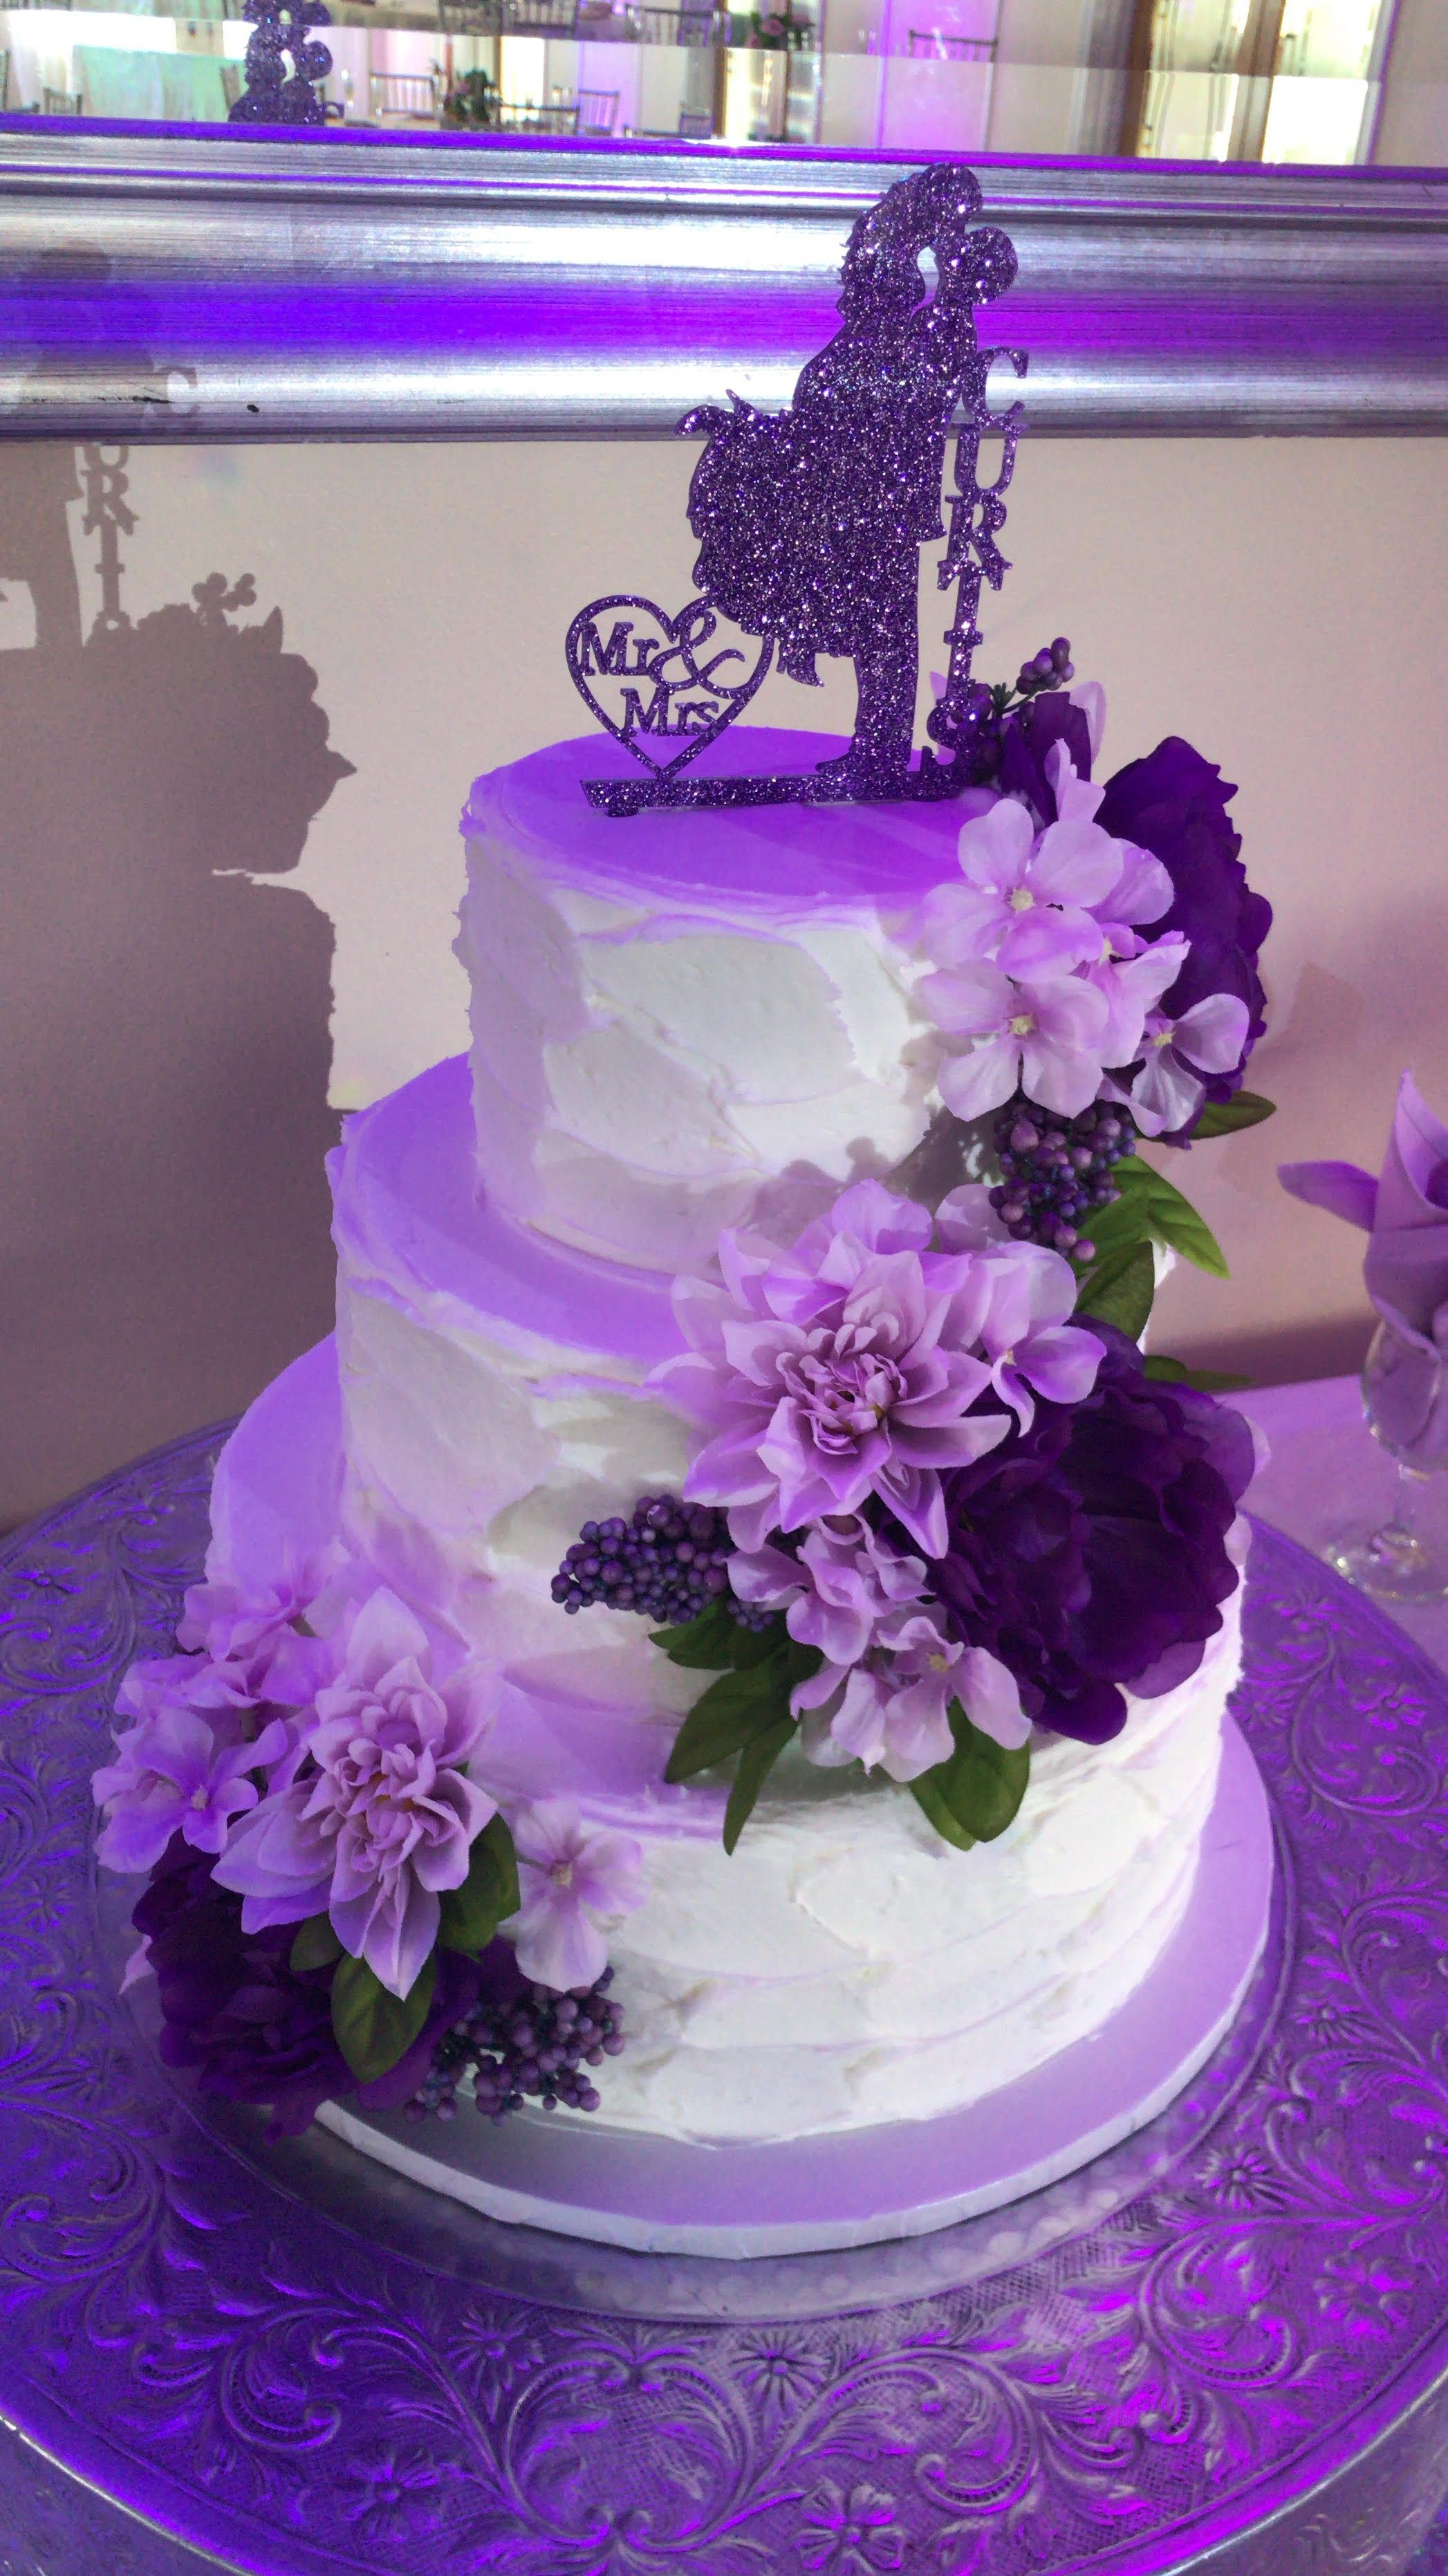 Beautiful spring cake from isgros bakery wedding cakes